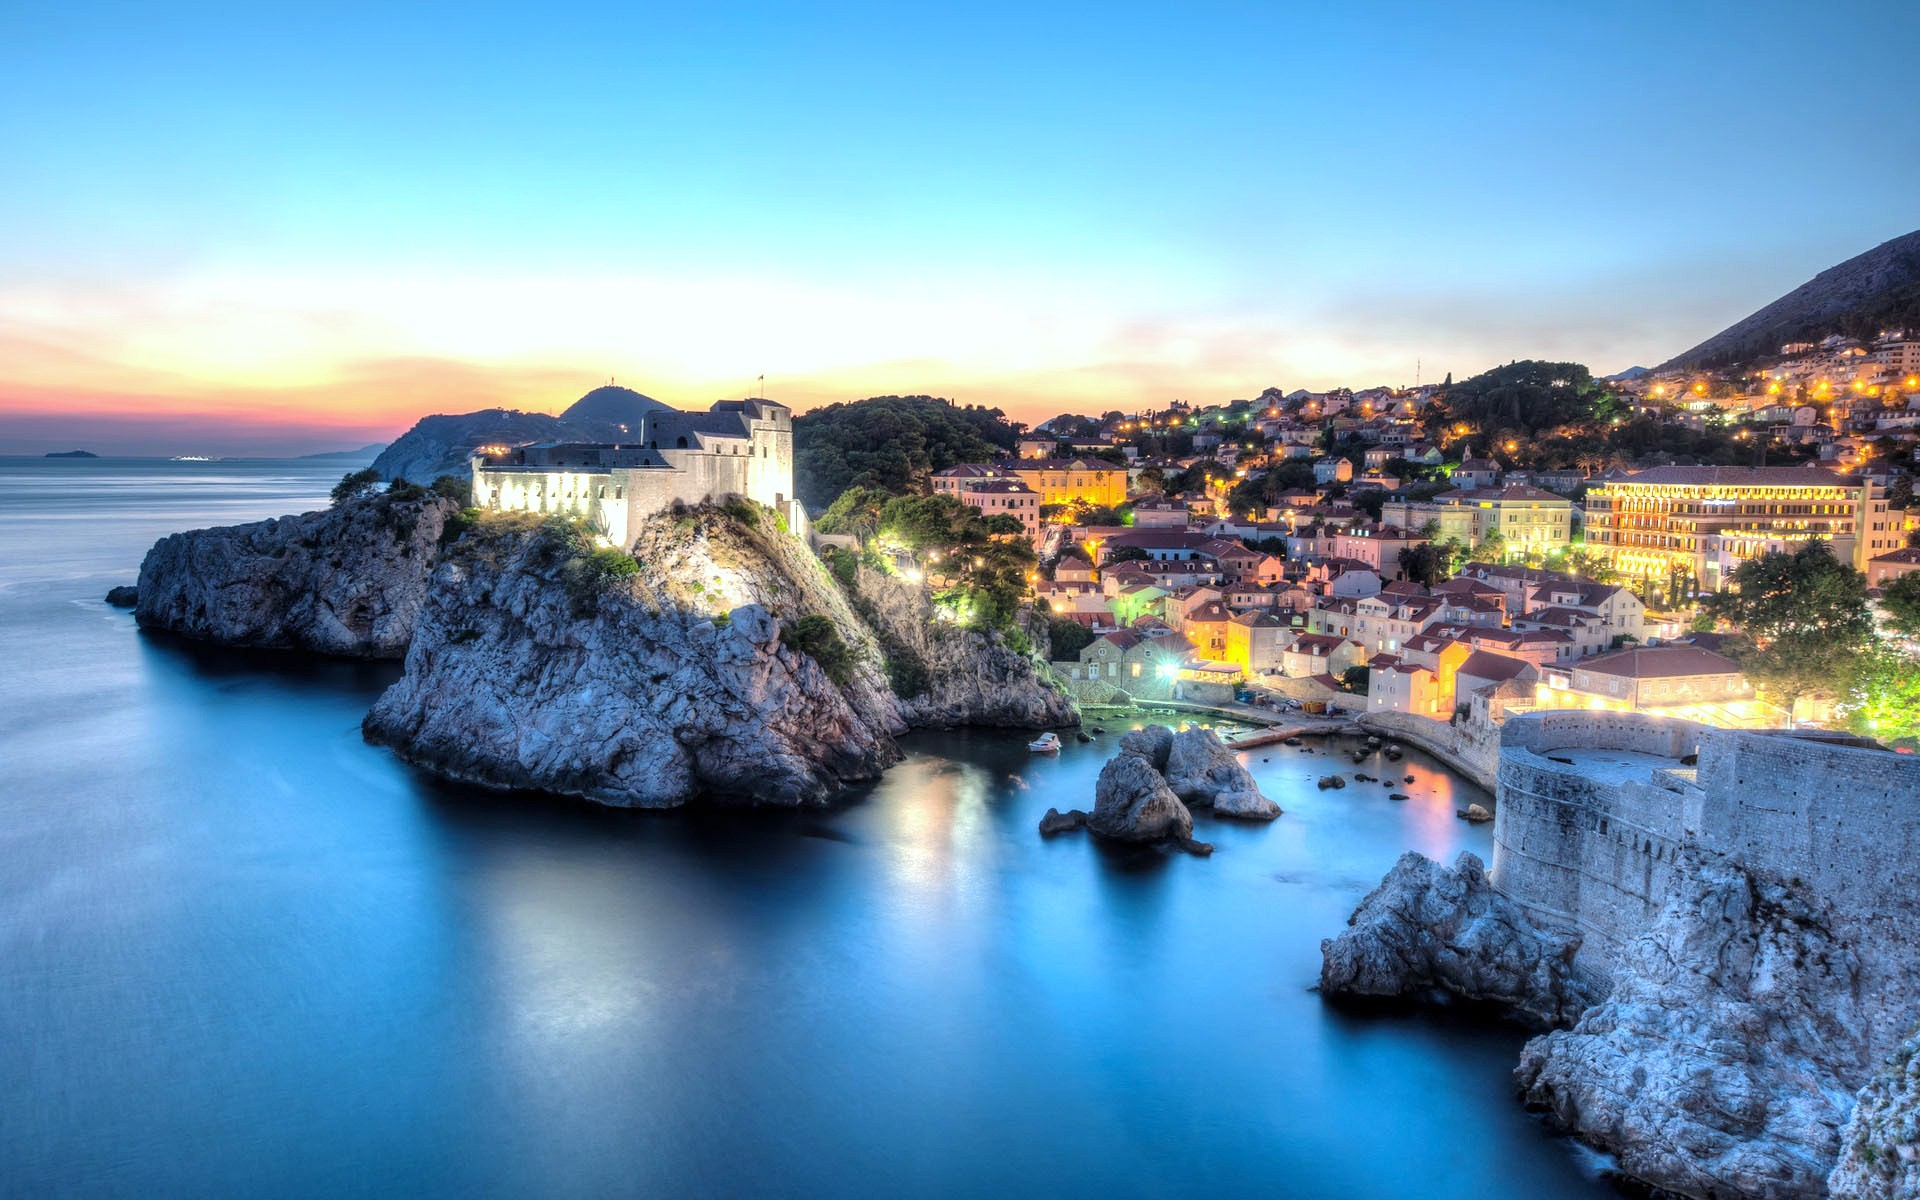 Dubrovnik – fell the spirit of the distant past!